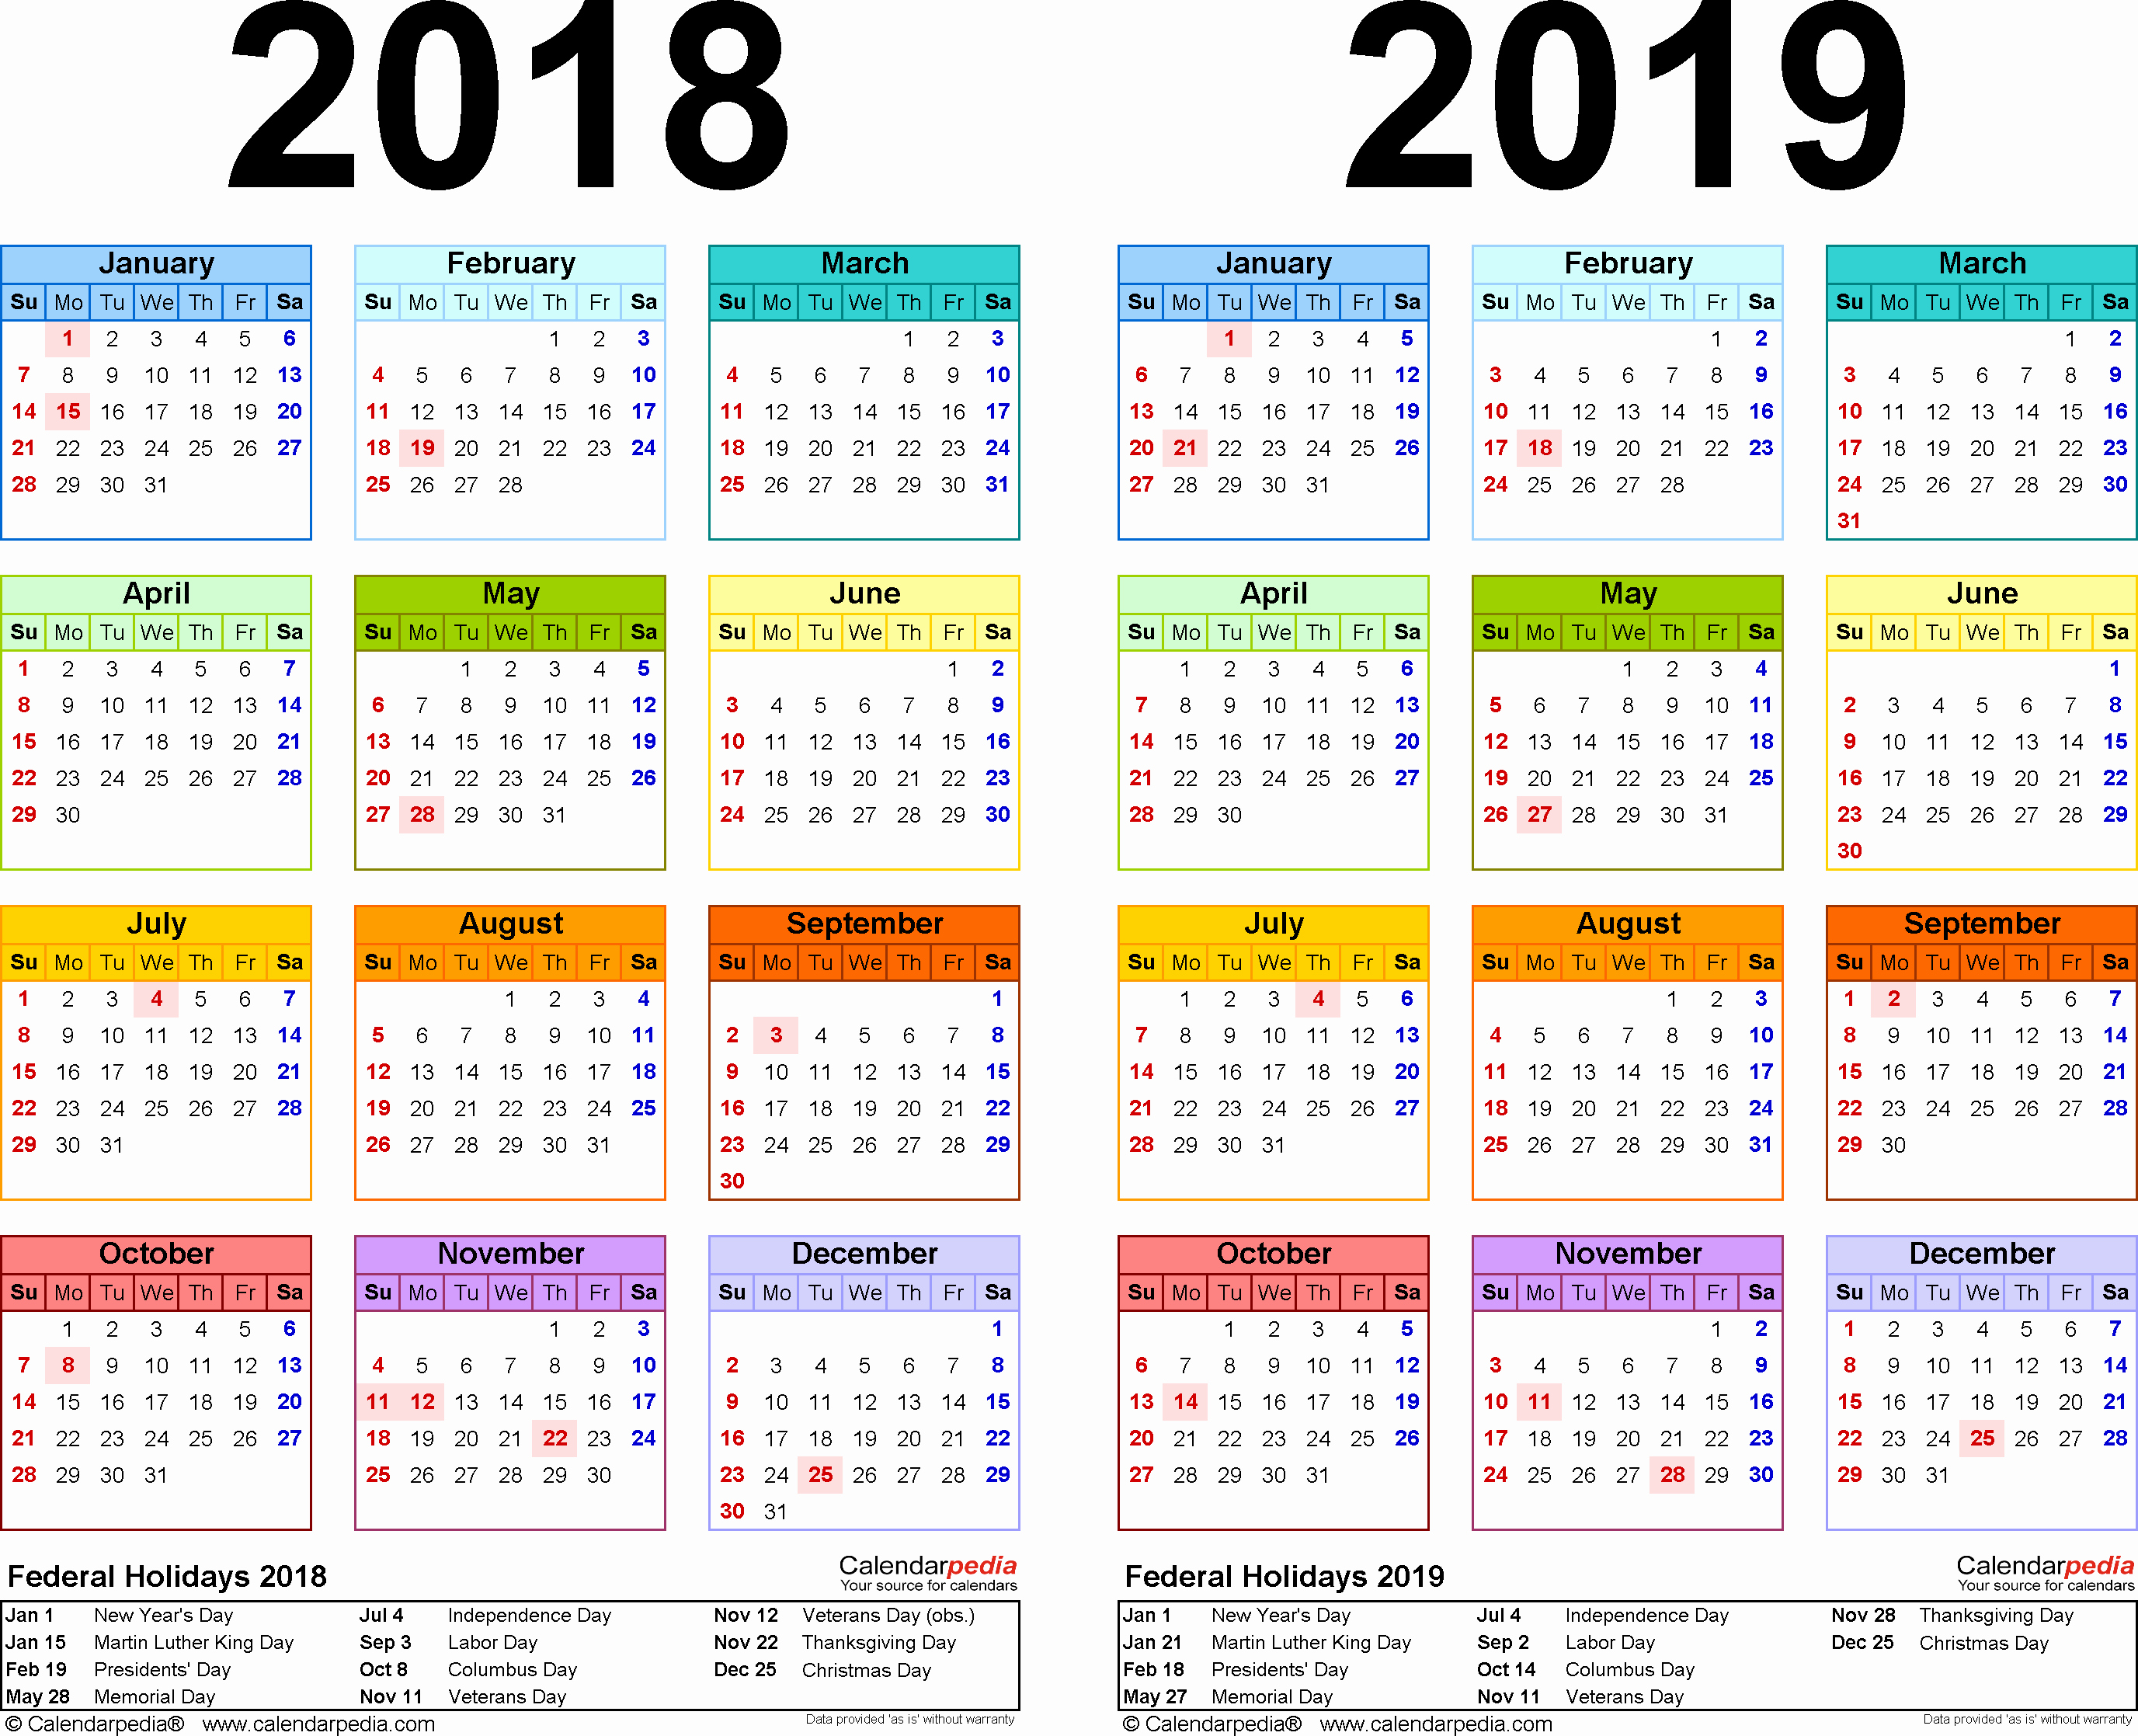 Government Fiscal Year 2019 Calendar With 2018 Yearly Printable